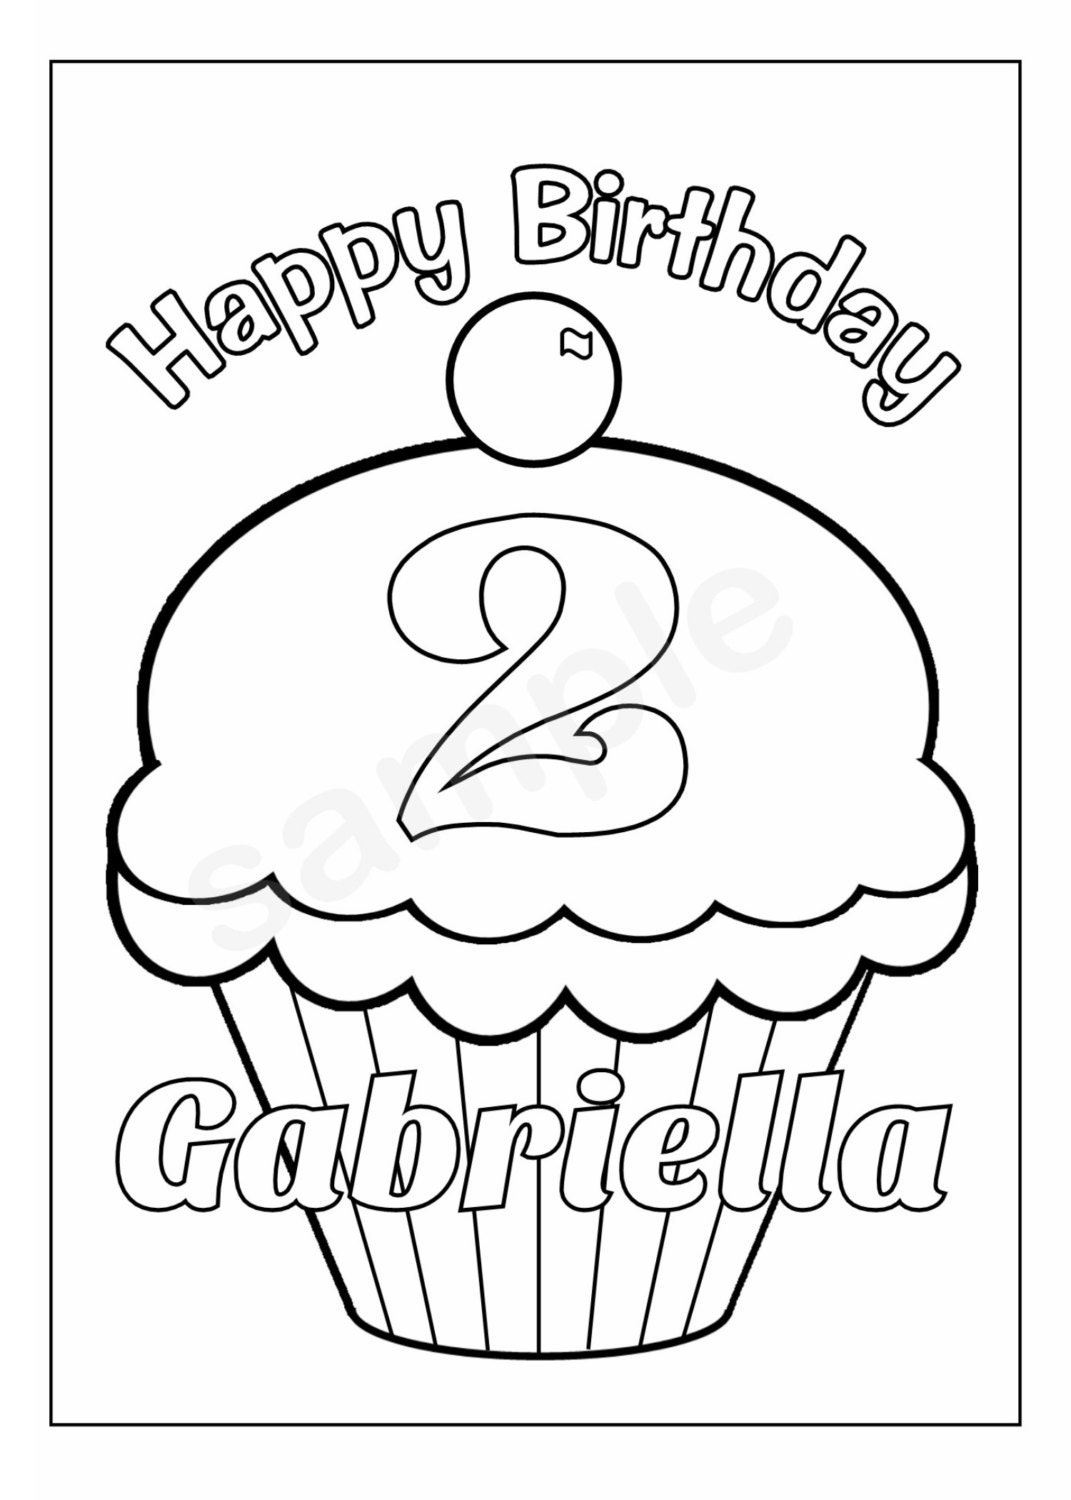 Personalized printable birthday cupcake cup cake by for Birthday cupcake coloring page